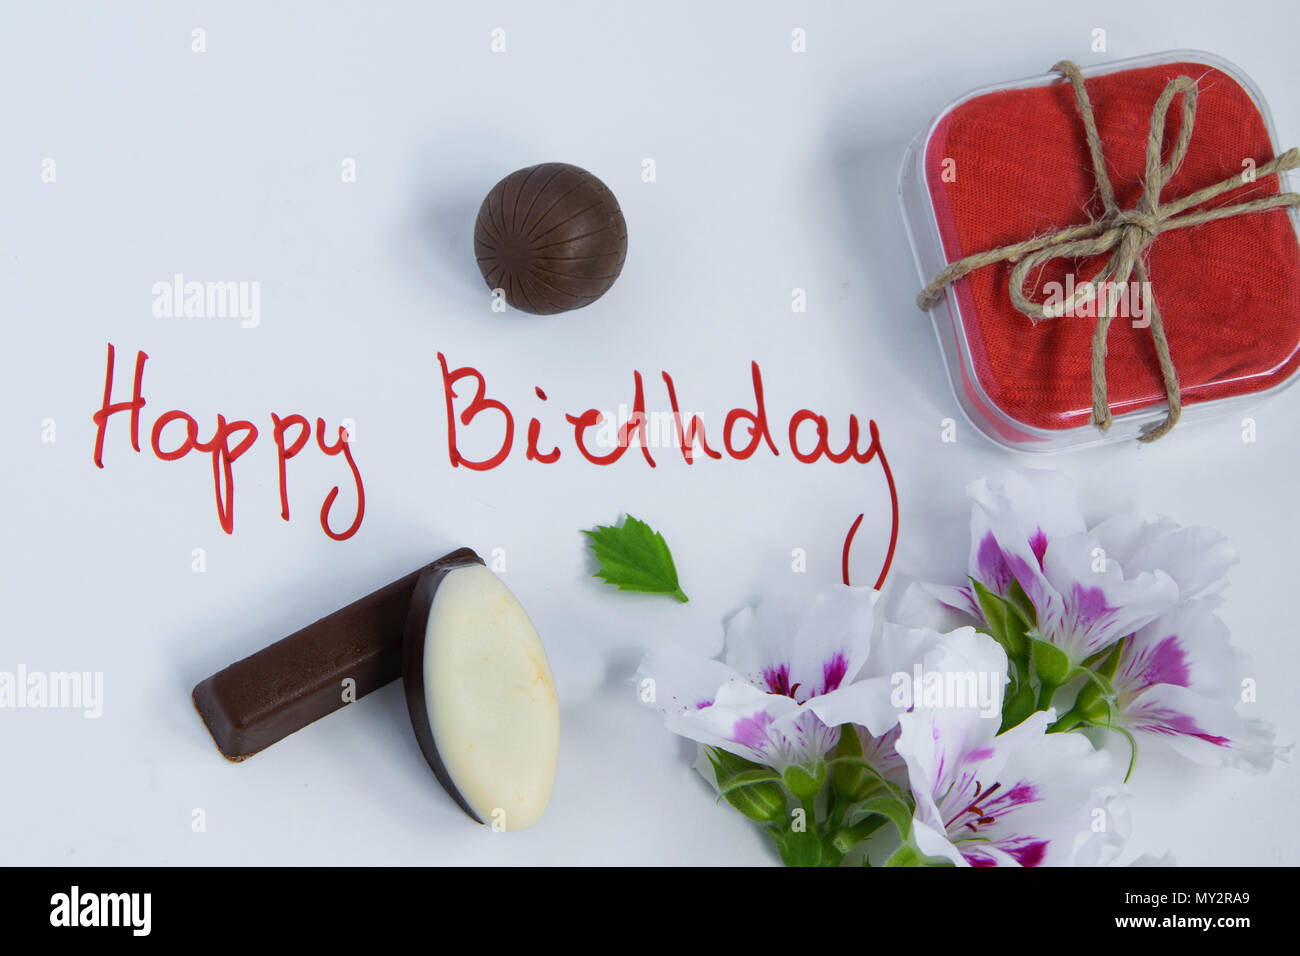 Happy Birthday Greeting Card With Gift Box Fresh Flowers And Chocolates On White Background